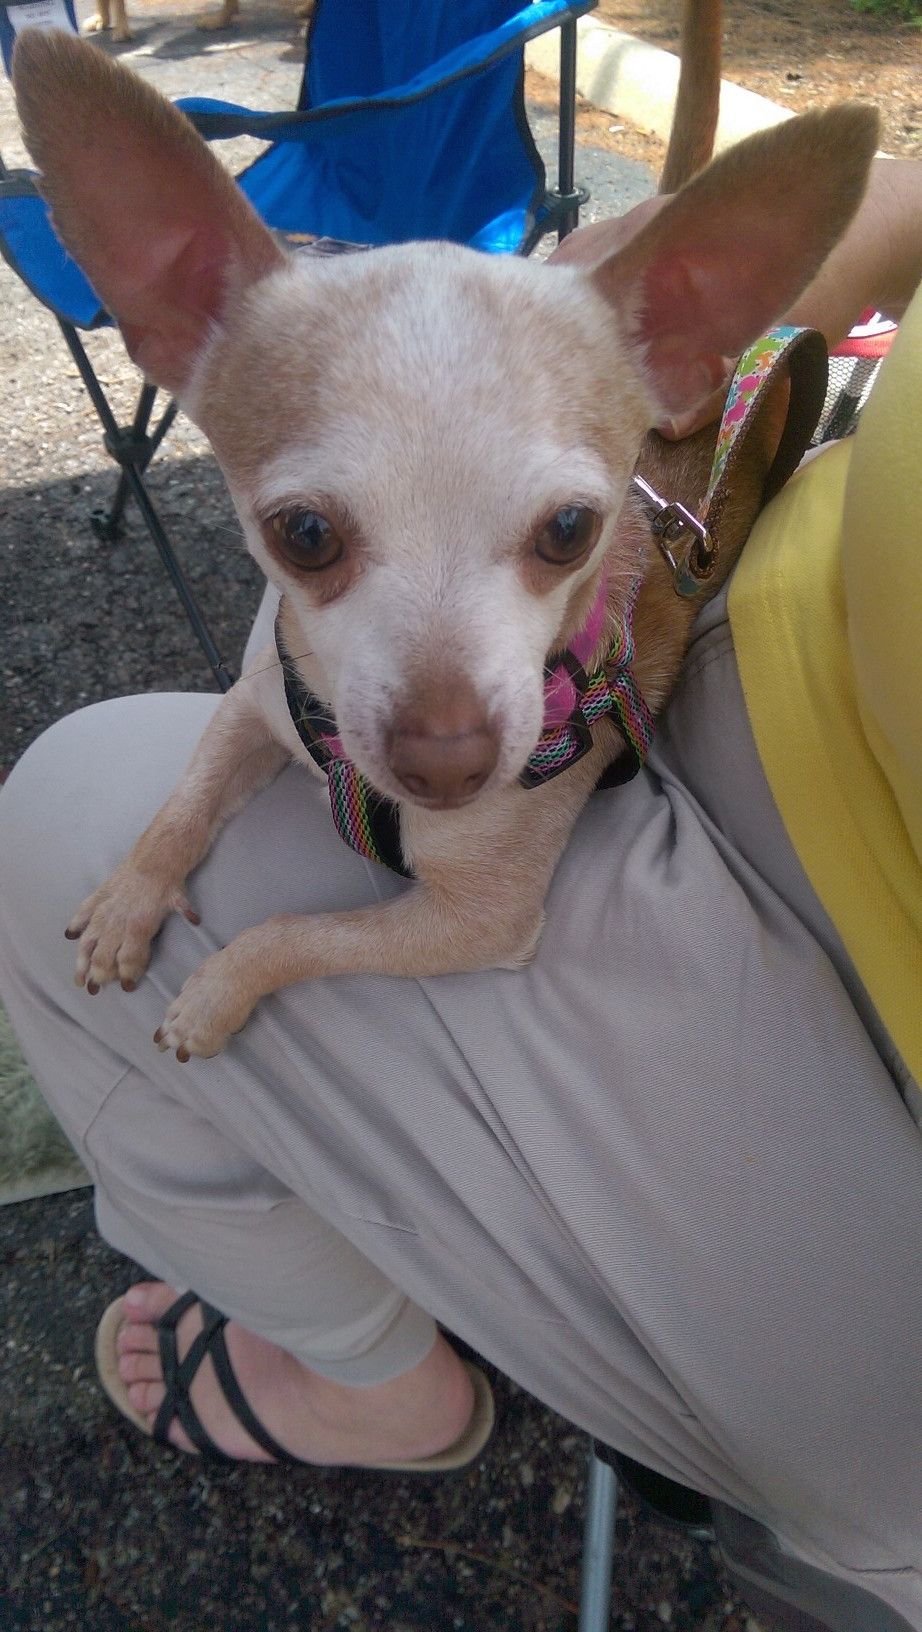 Chihuahua dog for Adoption in Columbus, OH. ADN529461 on